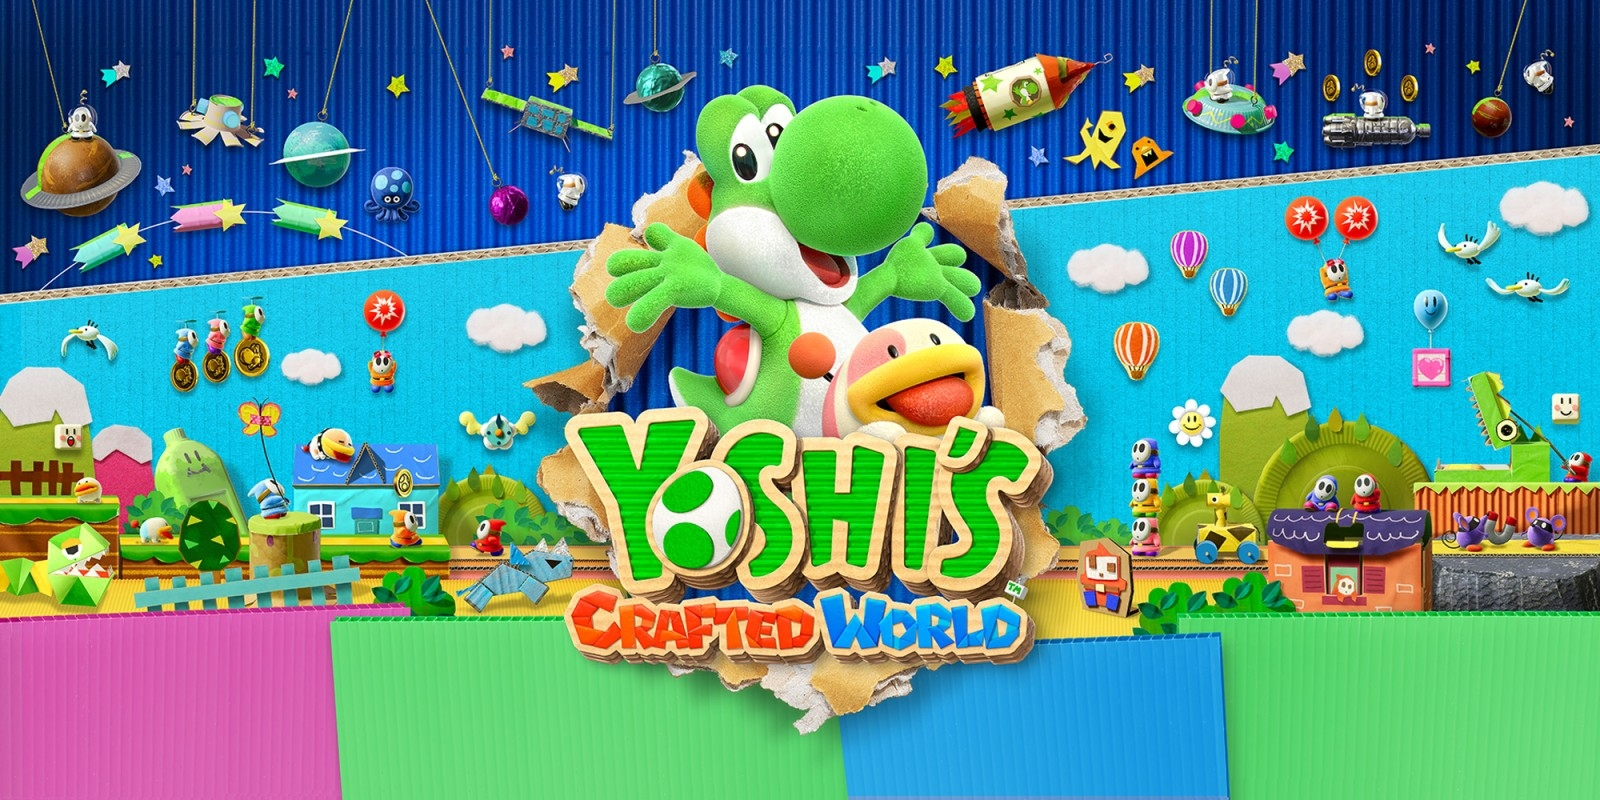 Видео: Yoshi's Crafted World для Nintendo Switch выйдет 29 марта